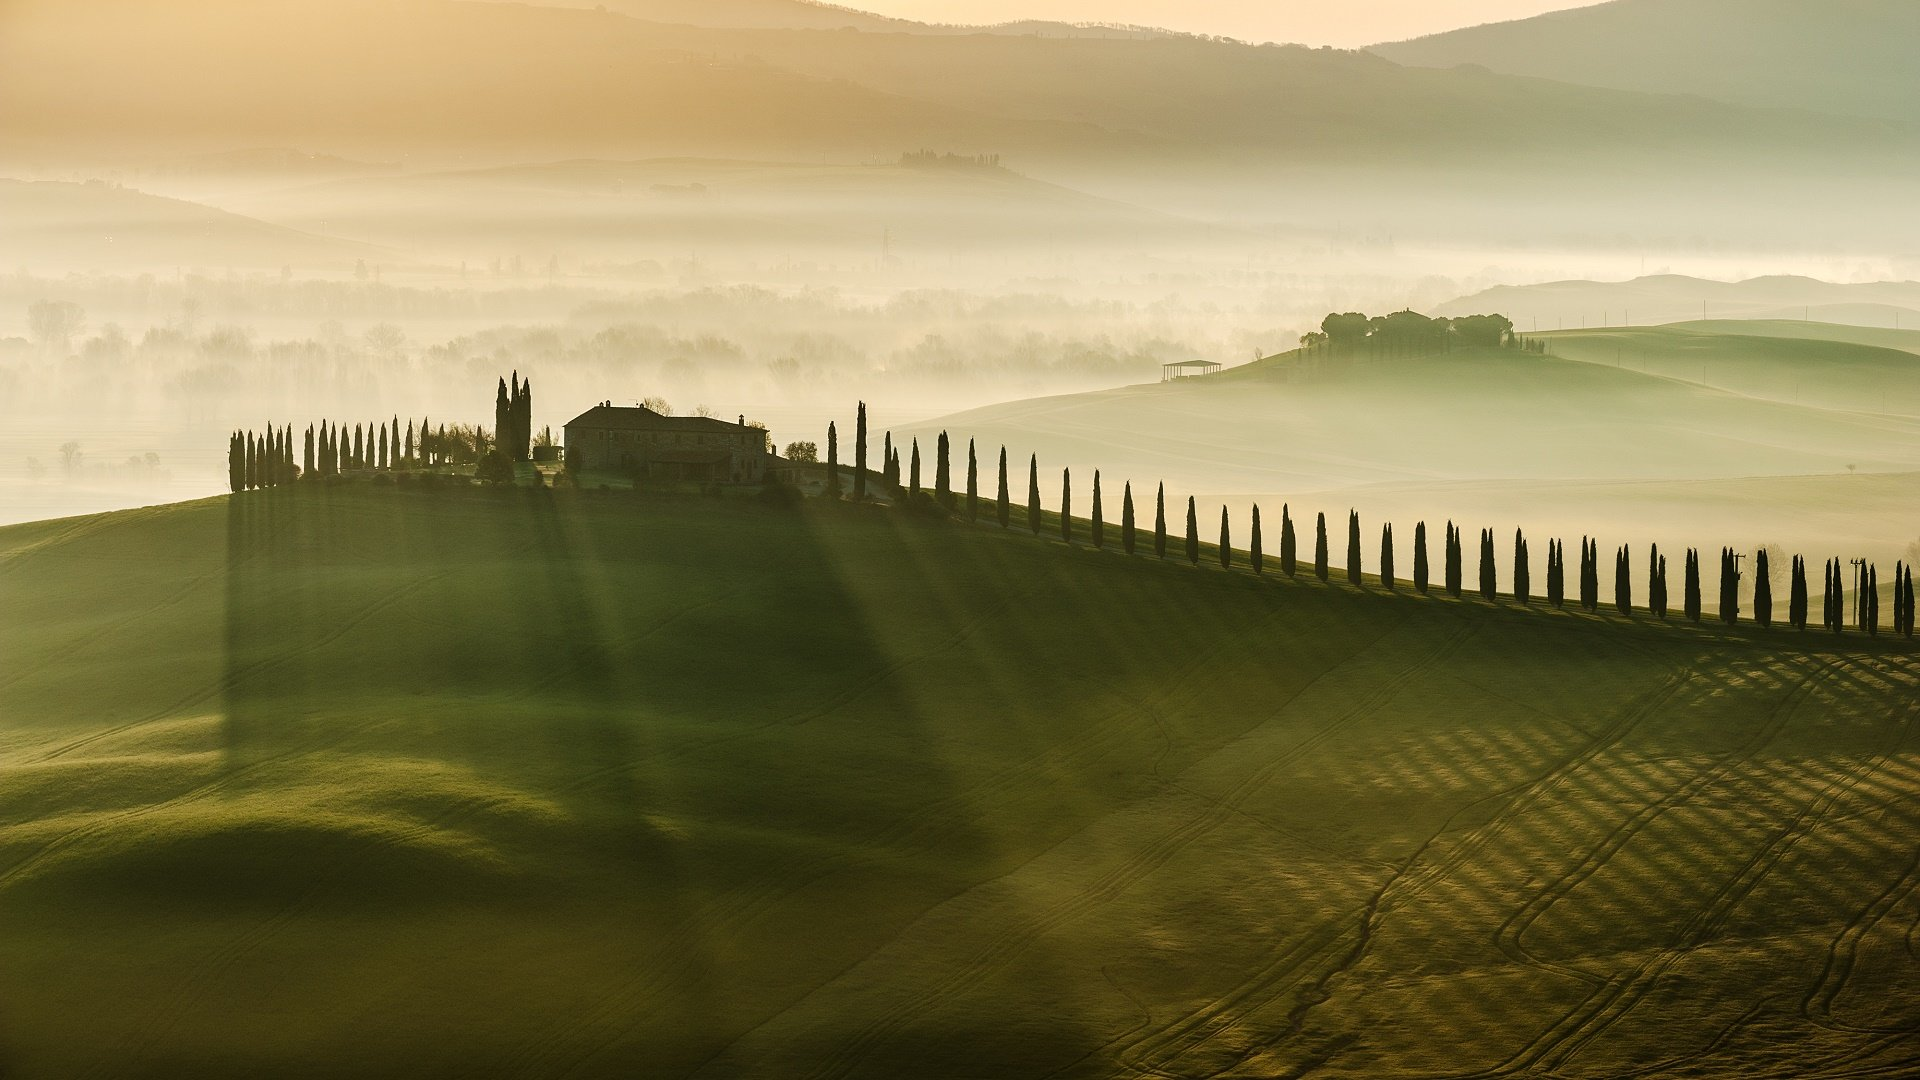 Tuscany wallpapers HD for desktop backgrounds